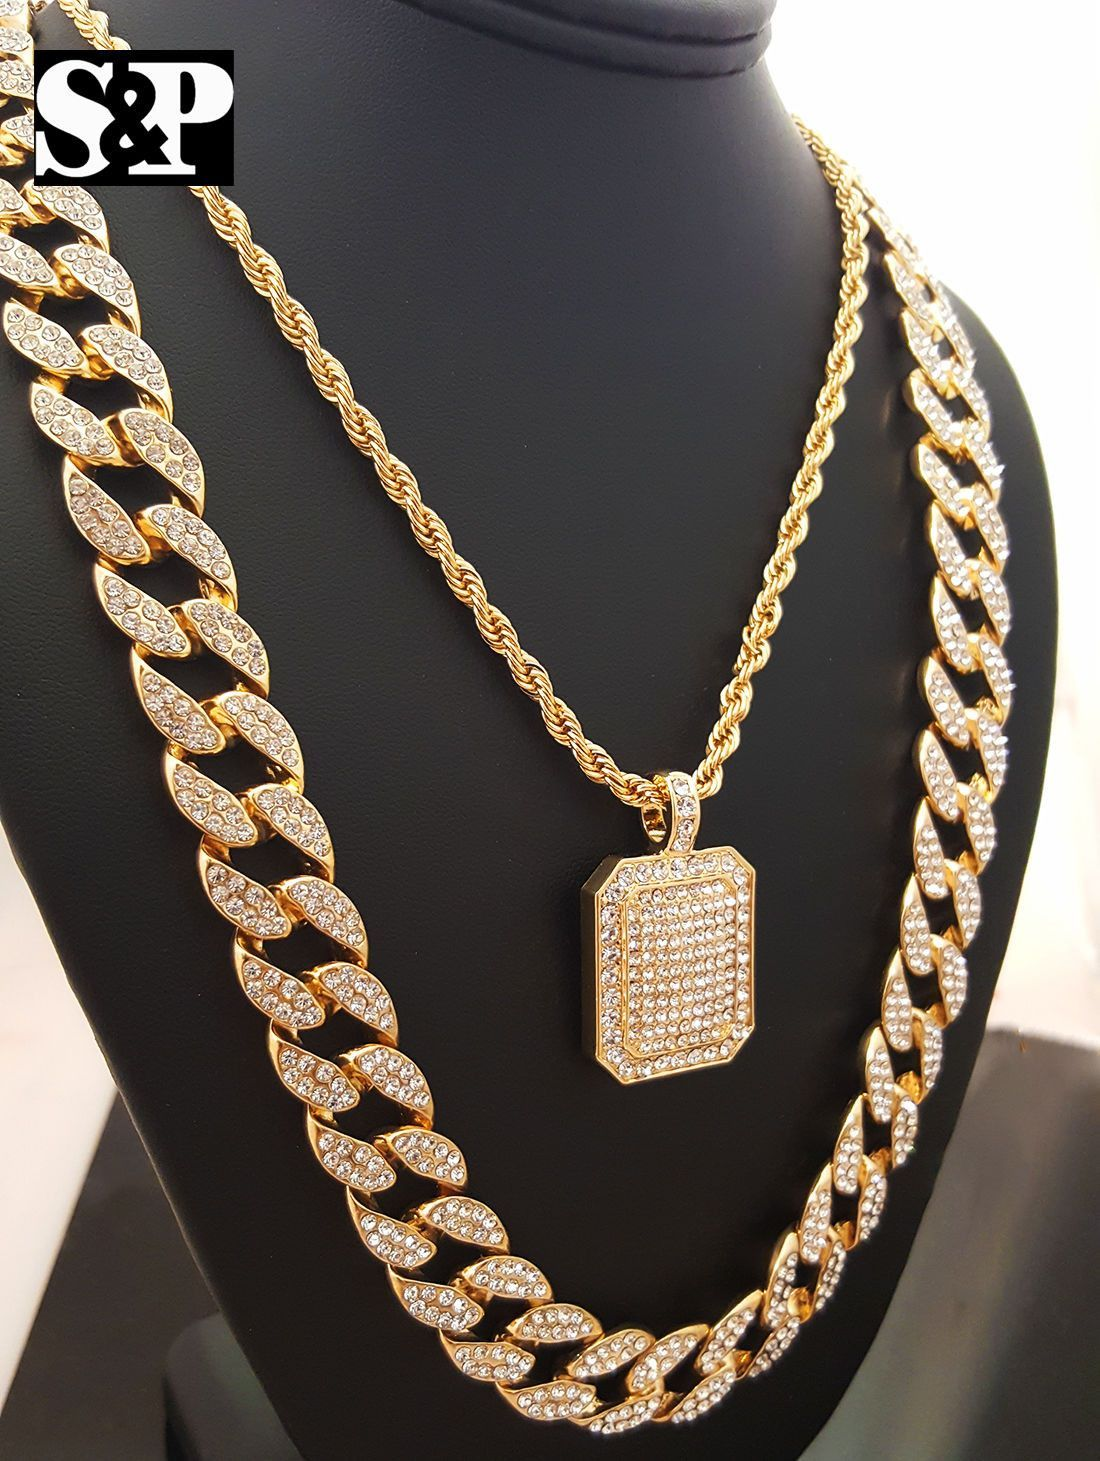 d206c37636f16 Iced out Pendant Necklace, Herringbone, Cuban Chain Combo | Products ...